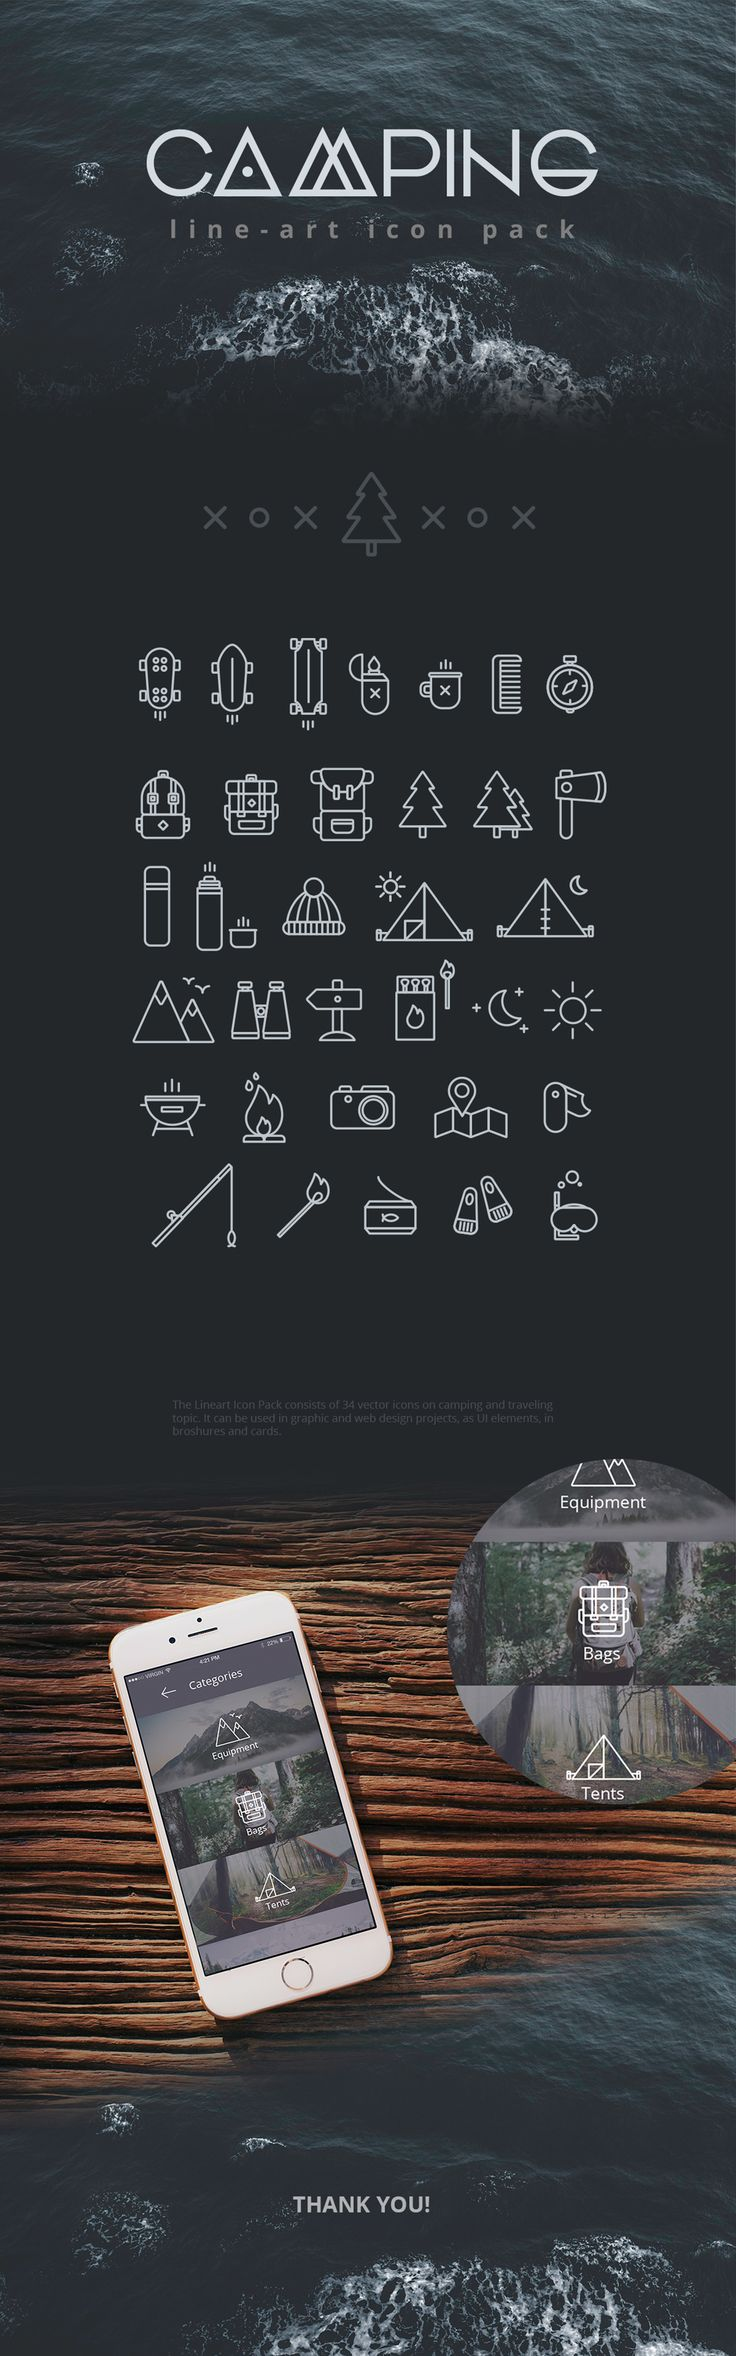 CAMPING (Free Icon Pack) on Behance